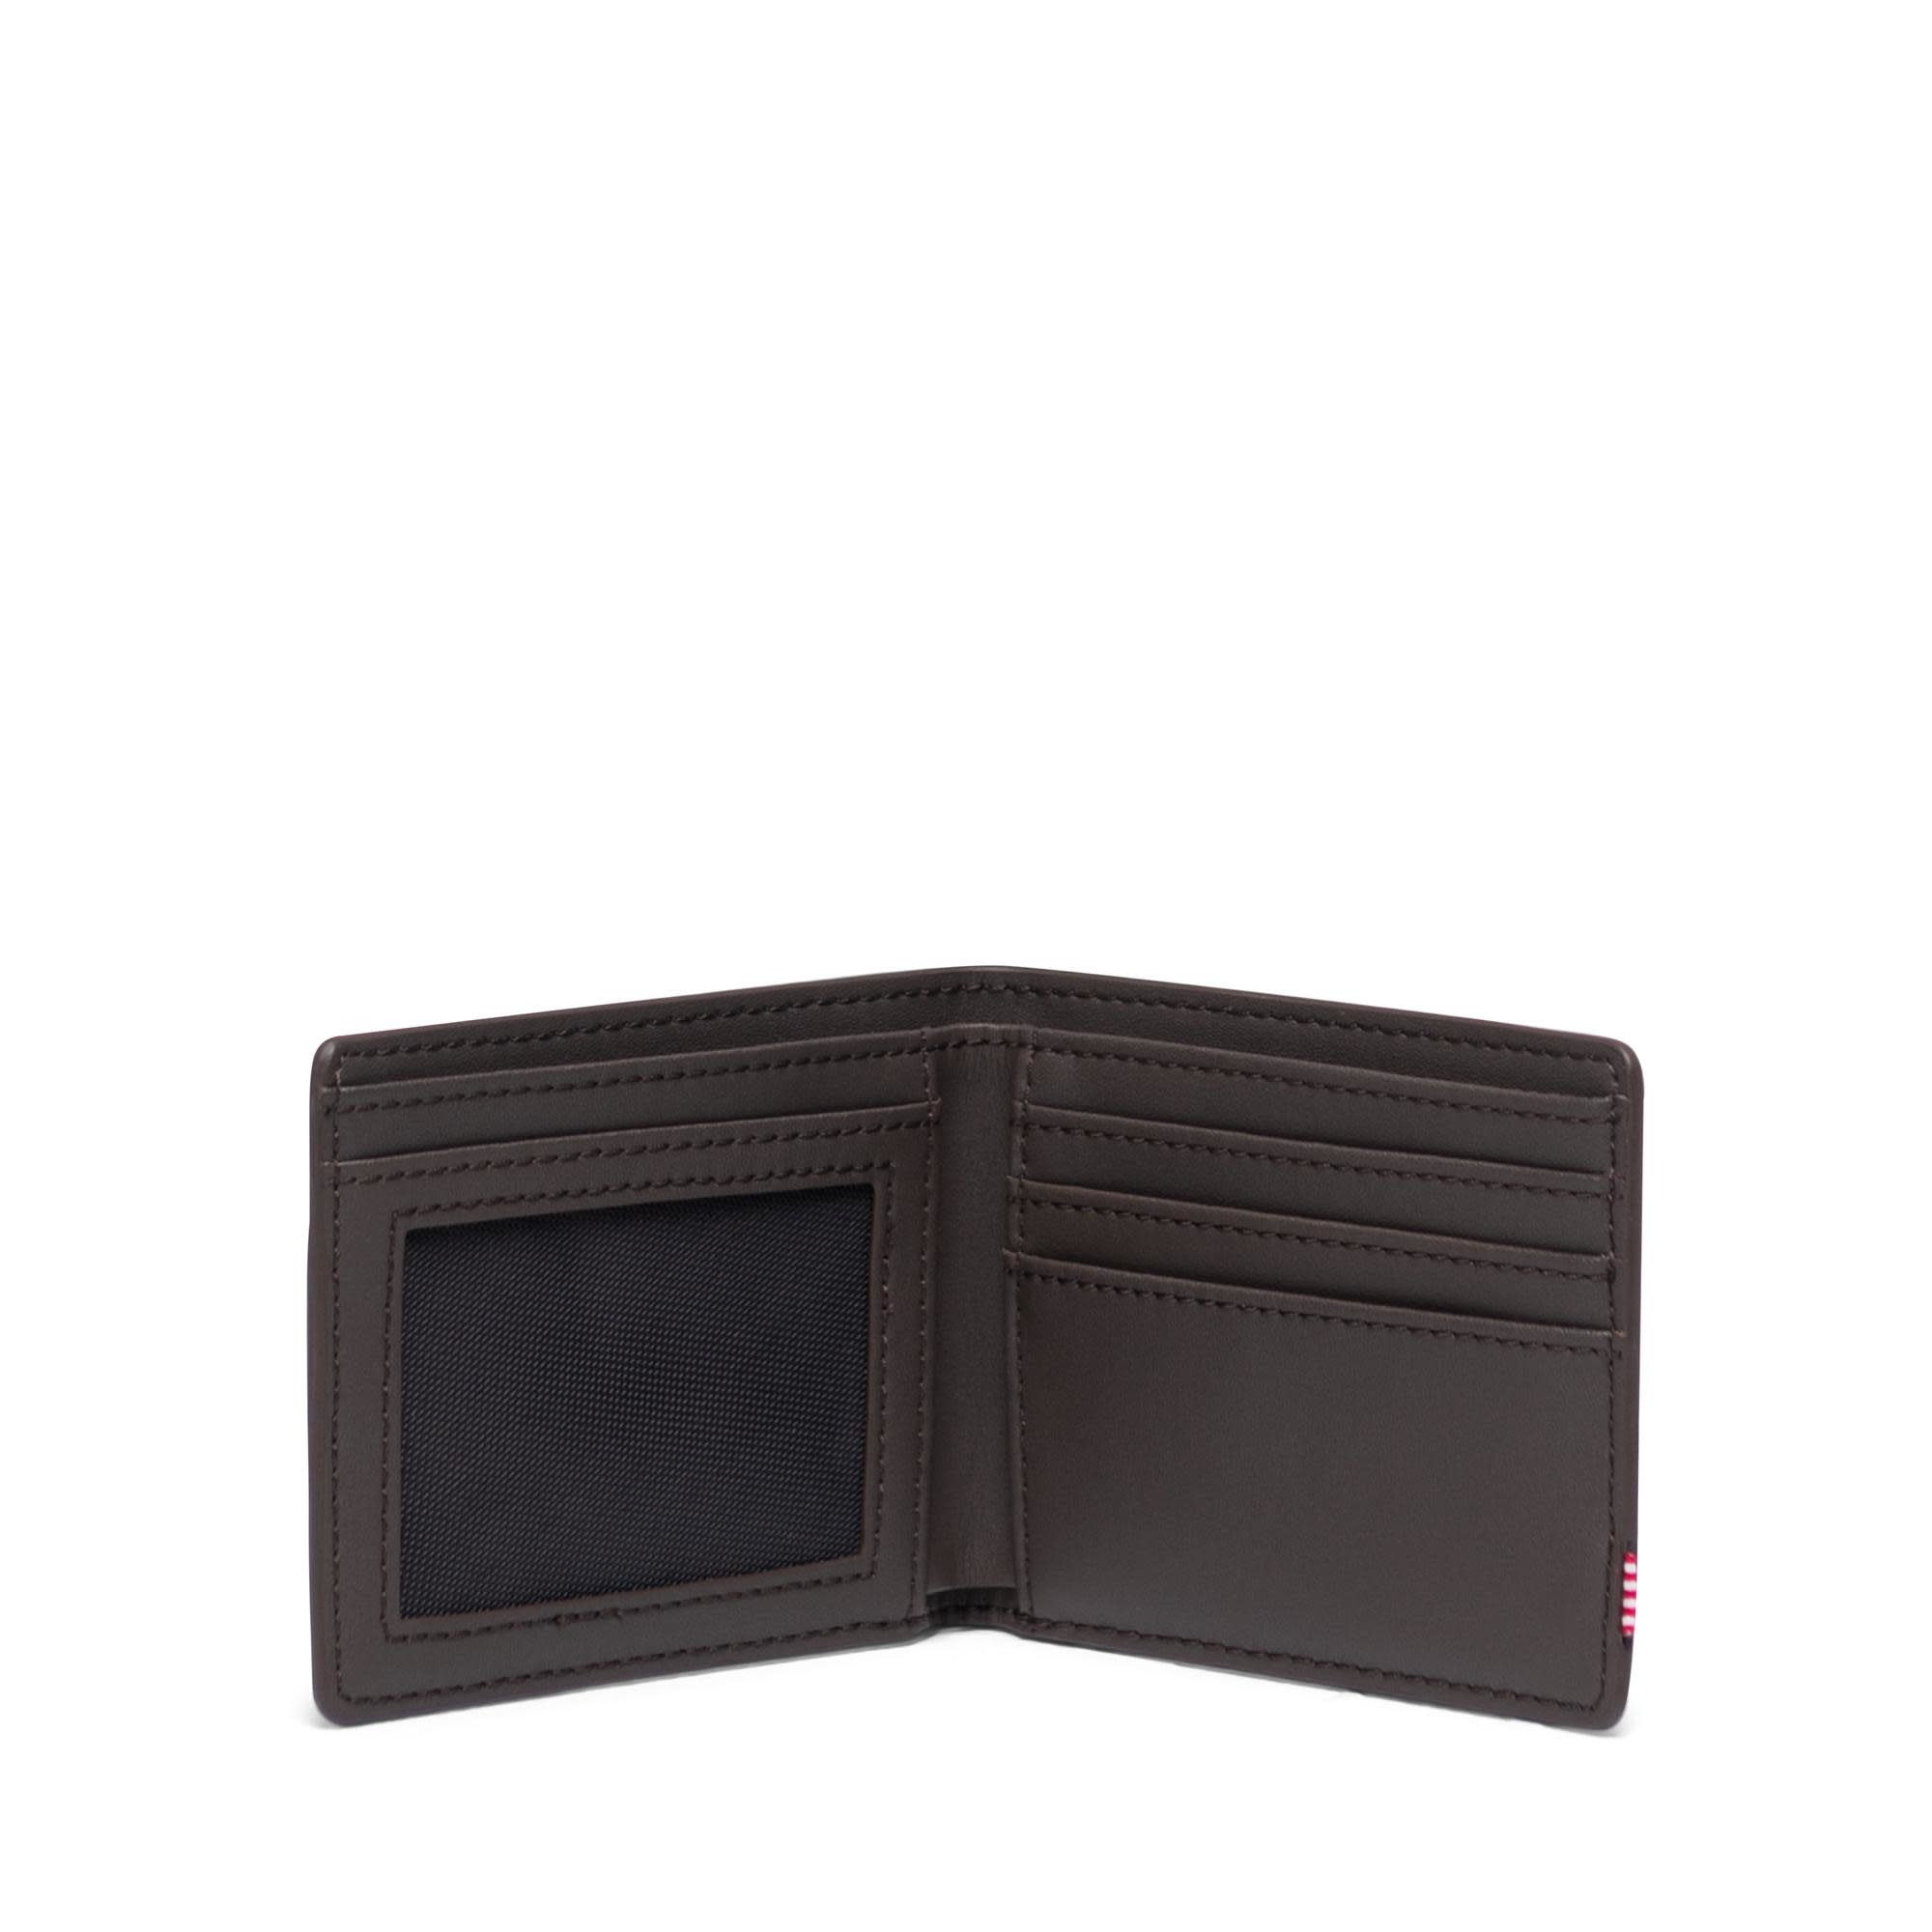 Herschel Supply Co. Herschel Hank Leather Wallet - Brown/RFID